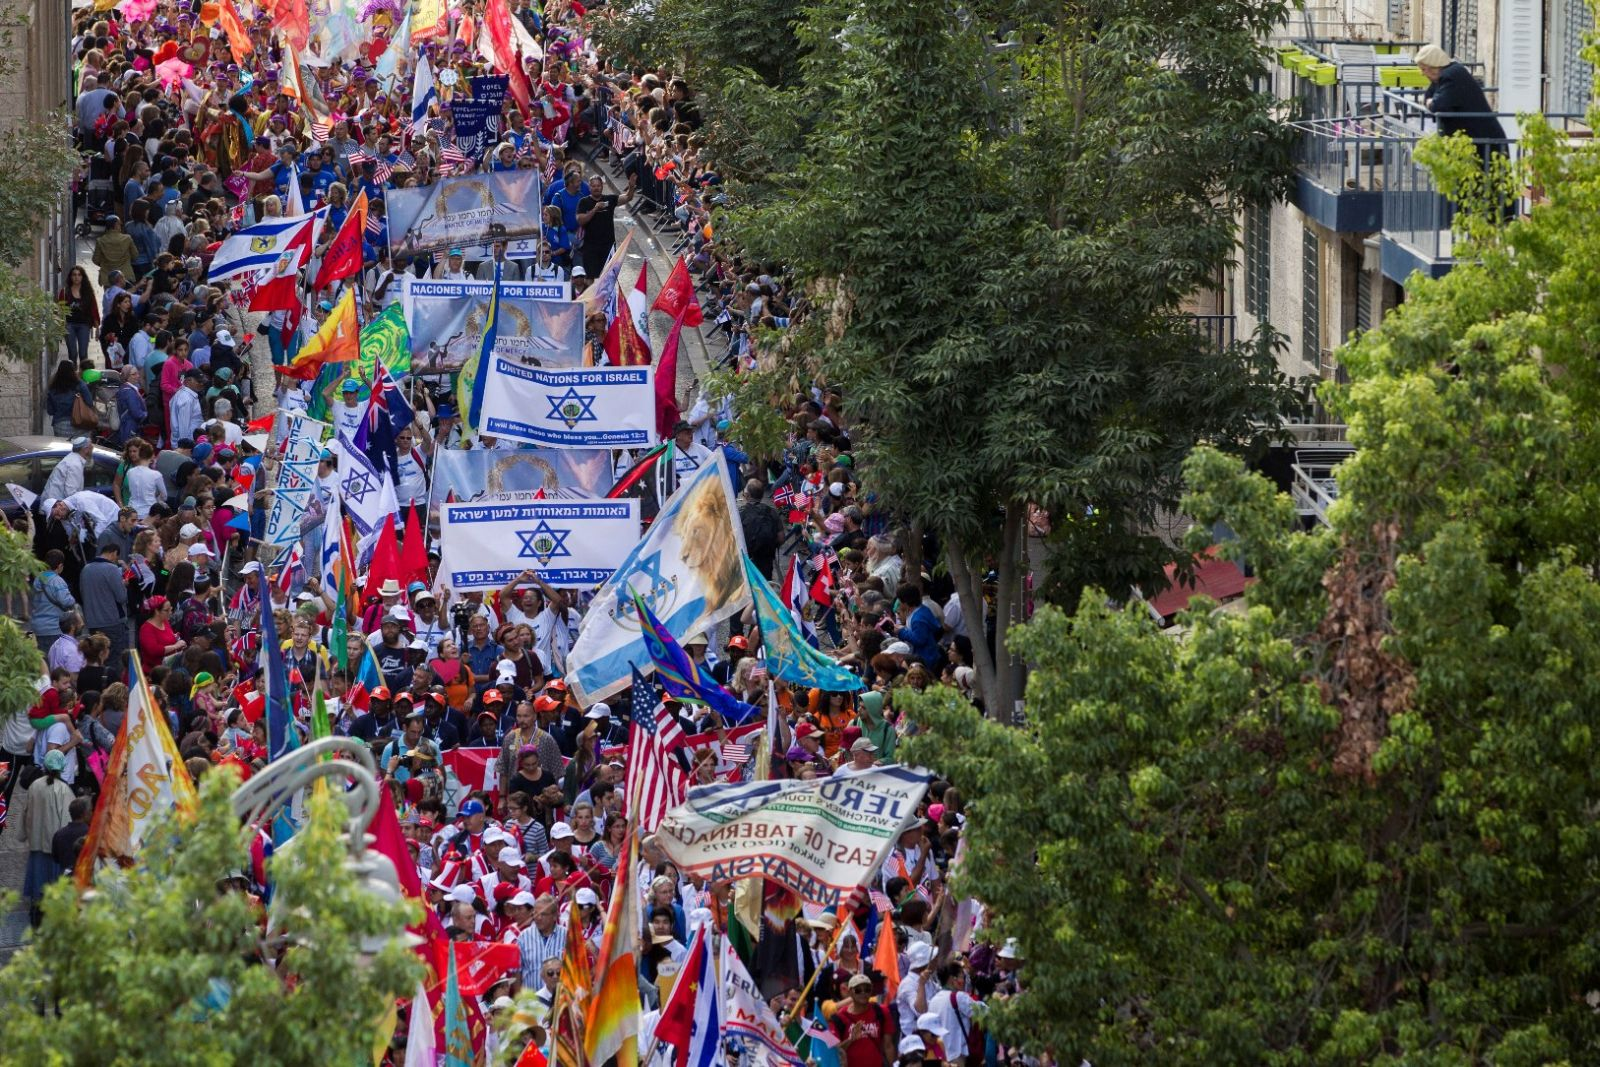 Tens of thousands of marchers parading through Jerusalem last Sukkot. Photo by Miriam Alster/FLASH90